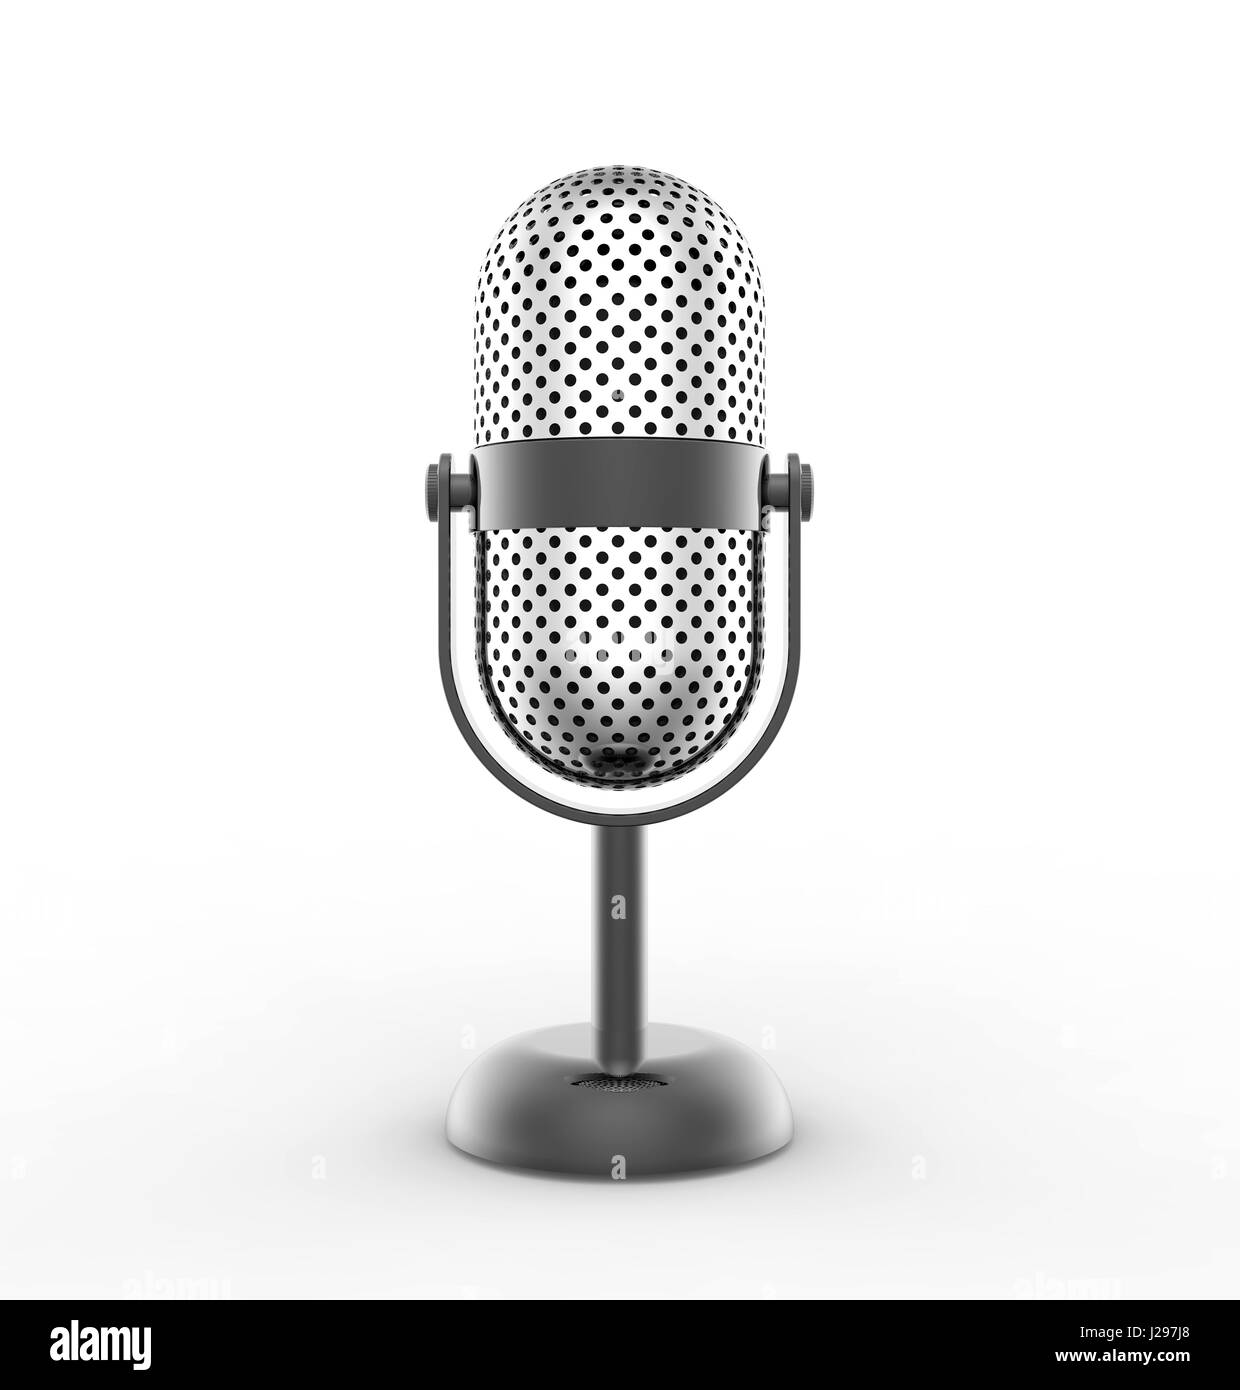 Vintage silver microphone isolated on white background - Stock Image